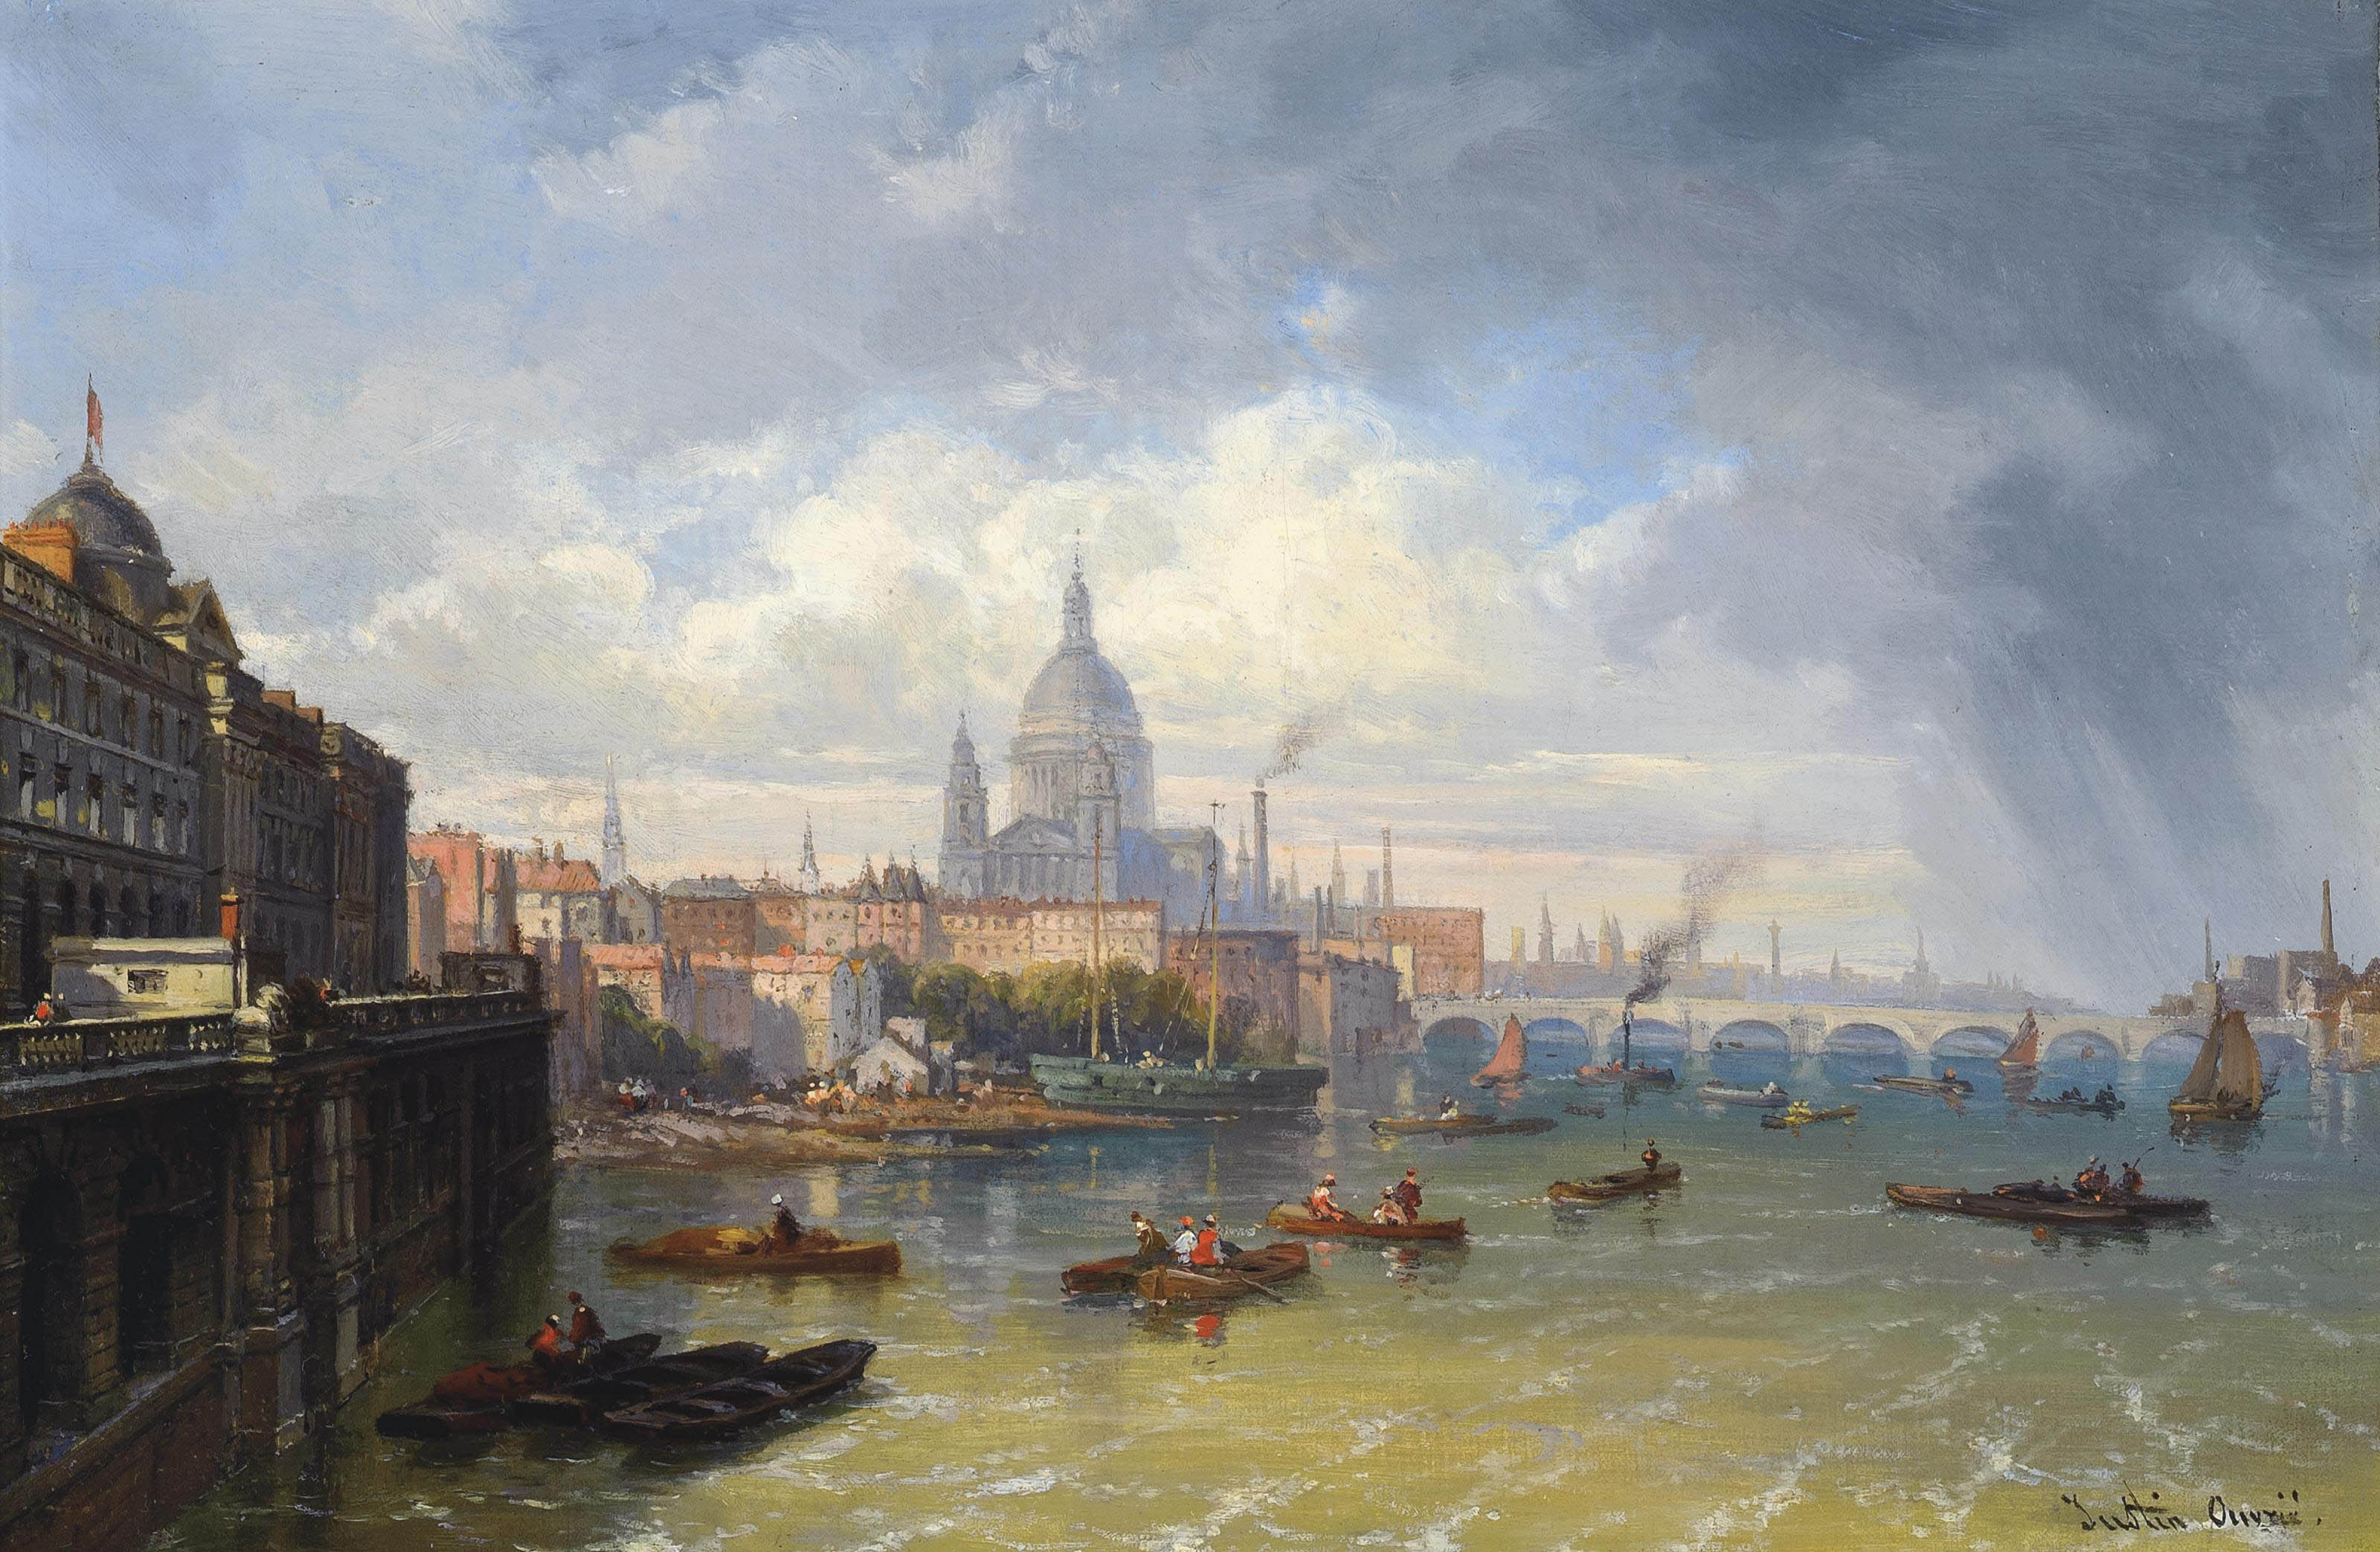 The Thames with Somerset House and St. Paul's Cathedral beyond